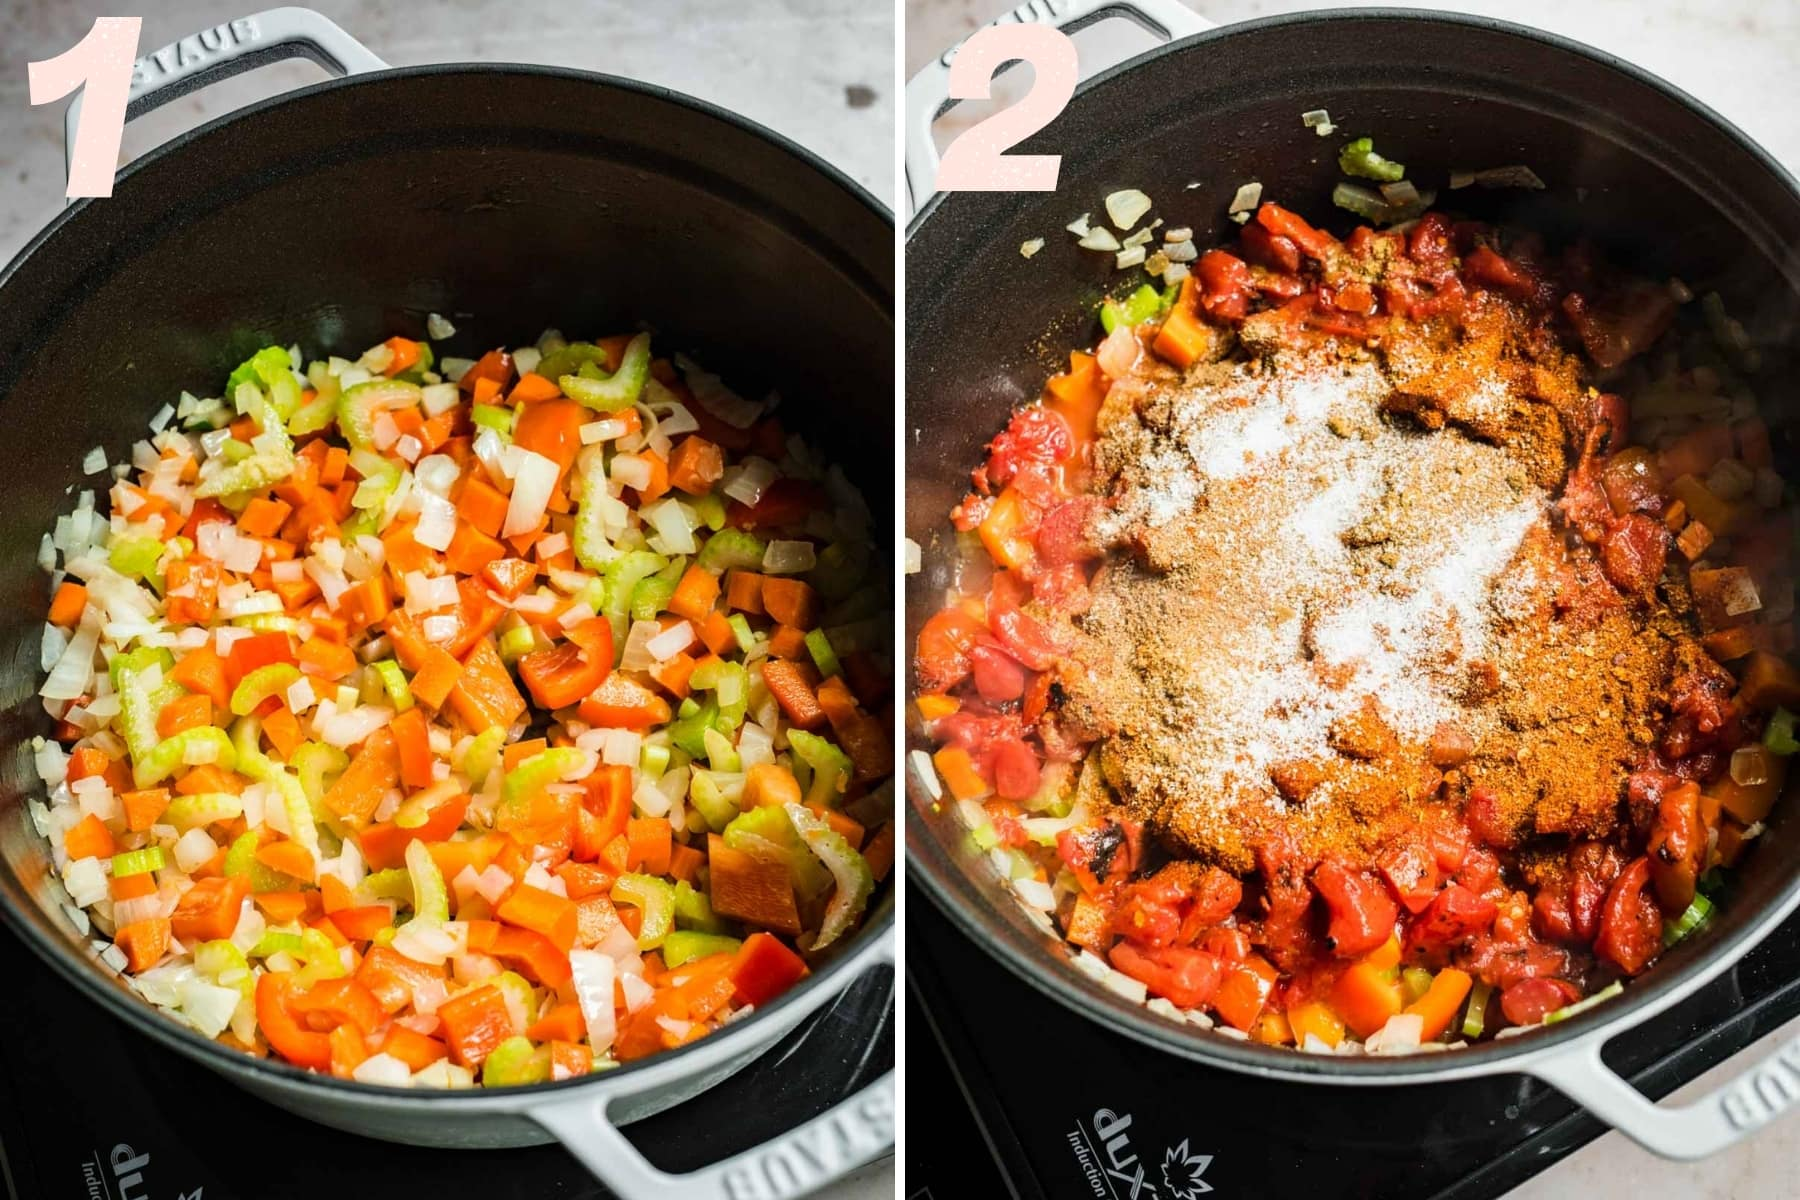 on the left: sauteed vegetables in soup pot. on the right: sauteed vegetables, tomatoes and spices in soup pot.